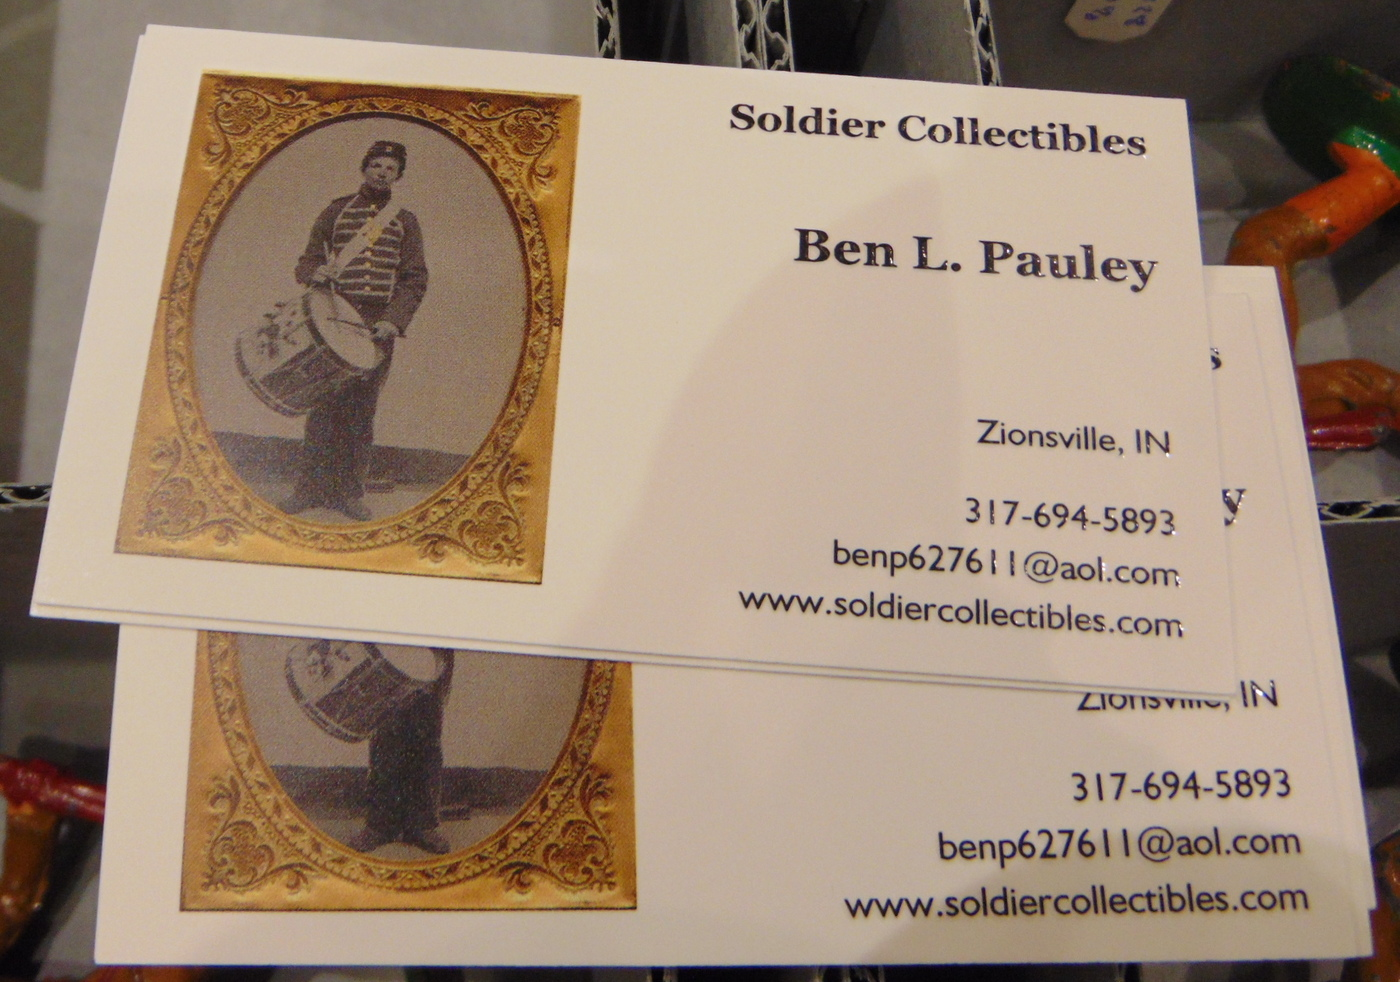 Soldier Collectibles